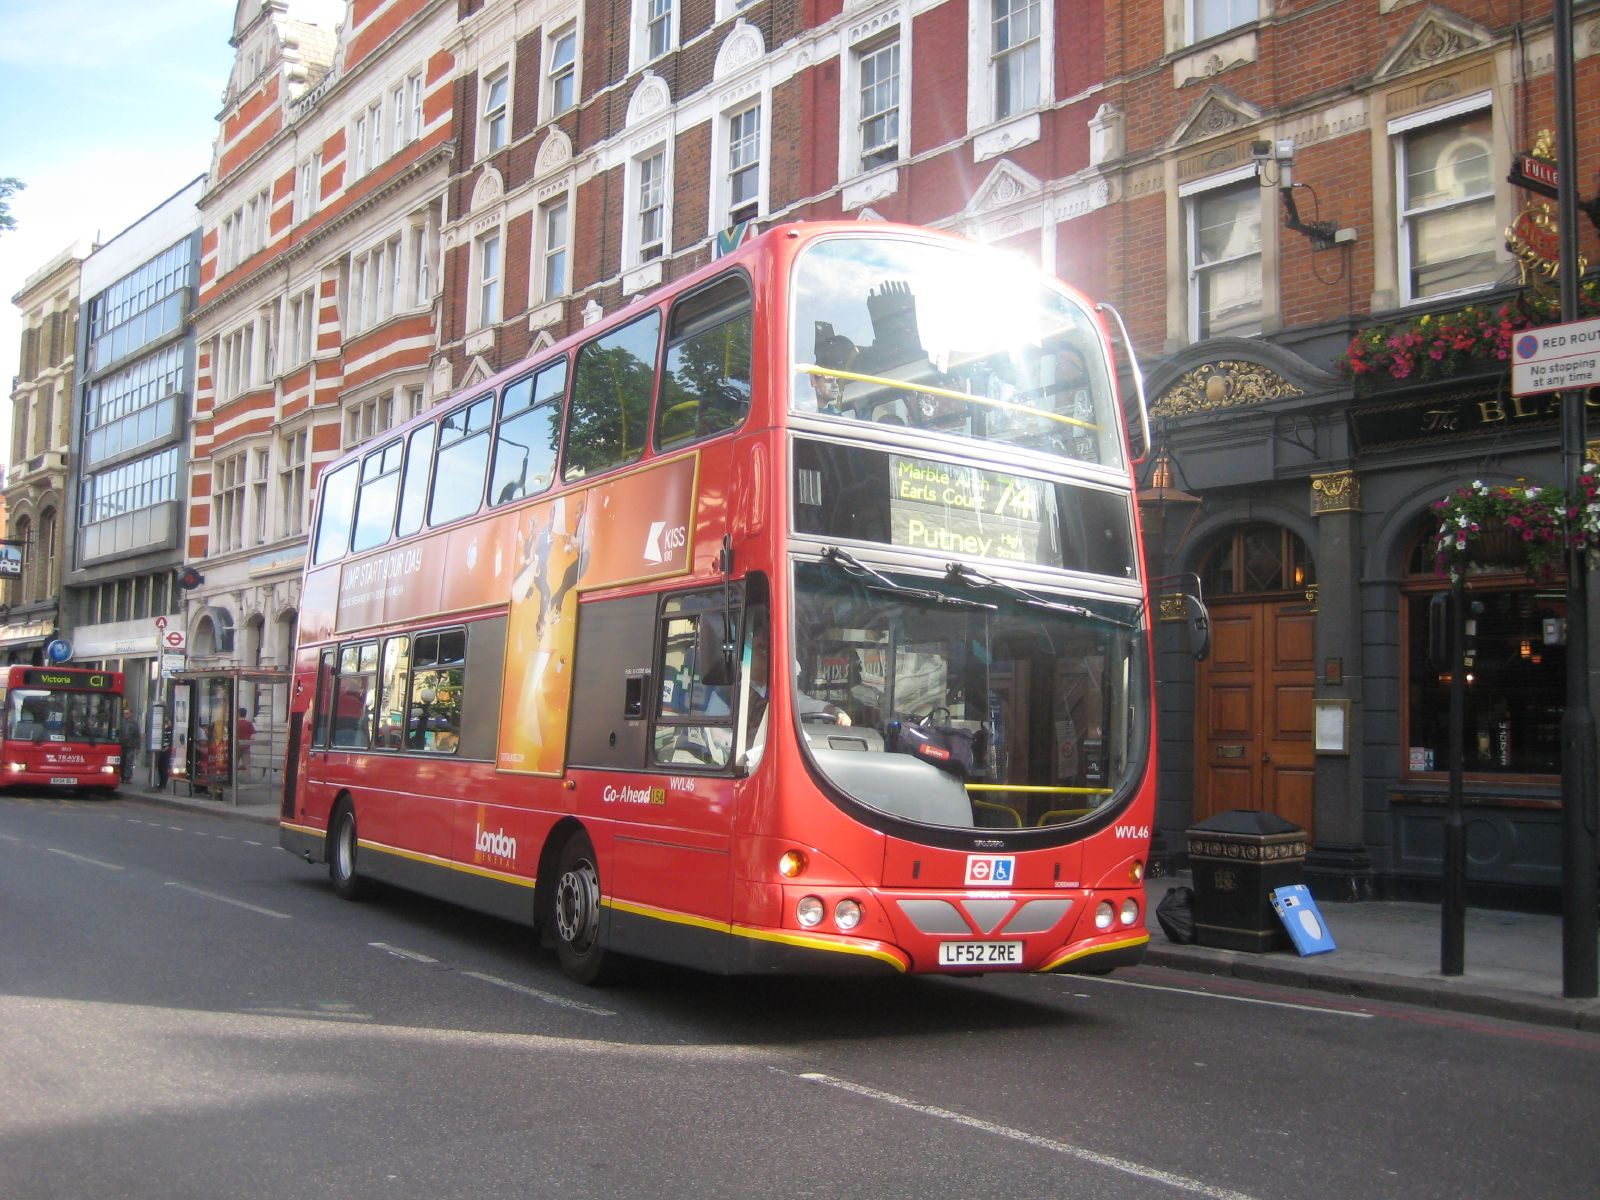 City Bus Route 2 File London Bus route 74  2 jpg   Wikimedia Commons fc9DmLAd